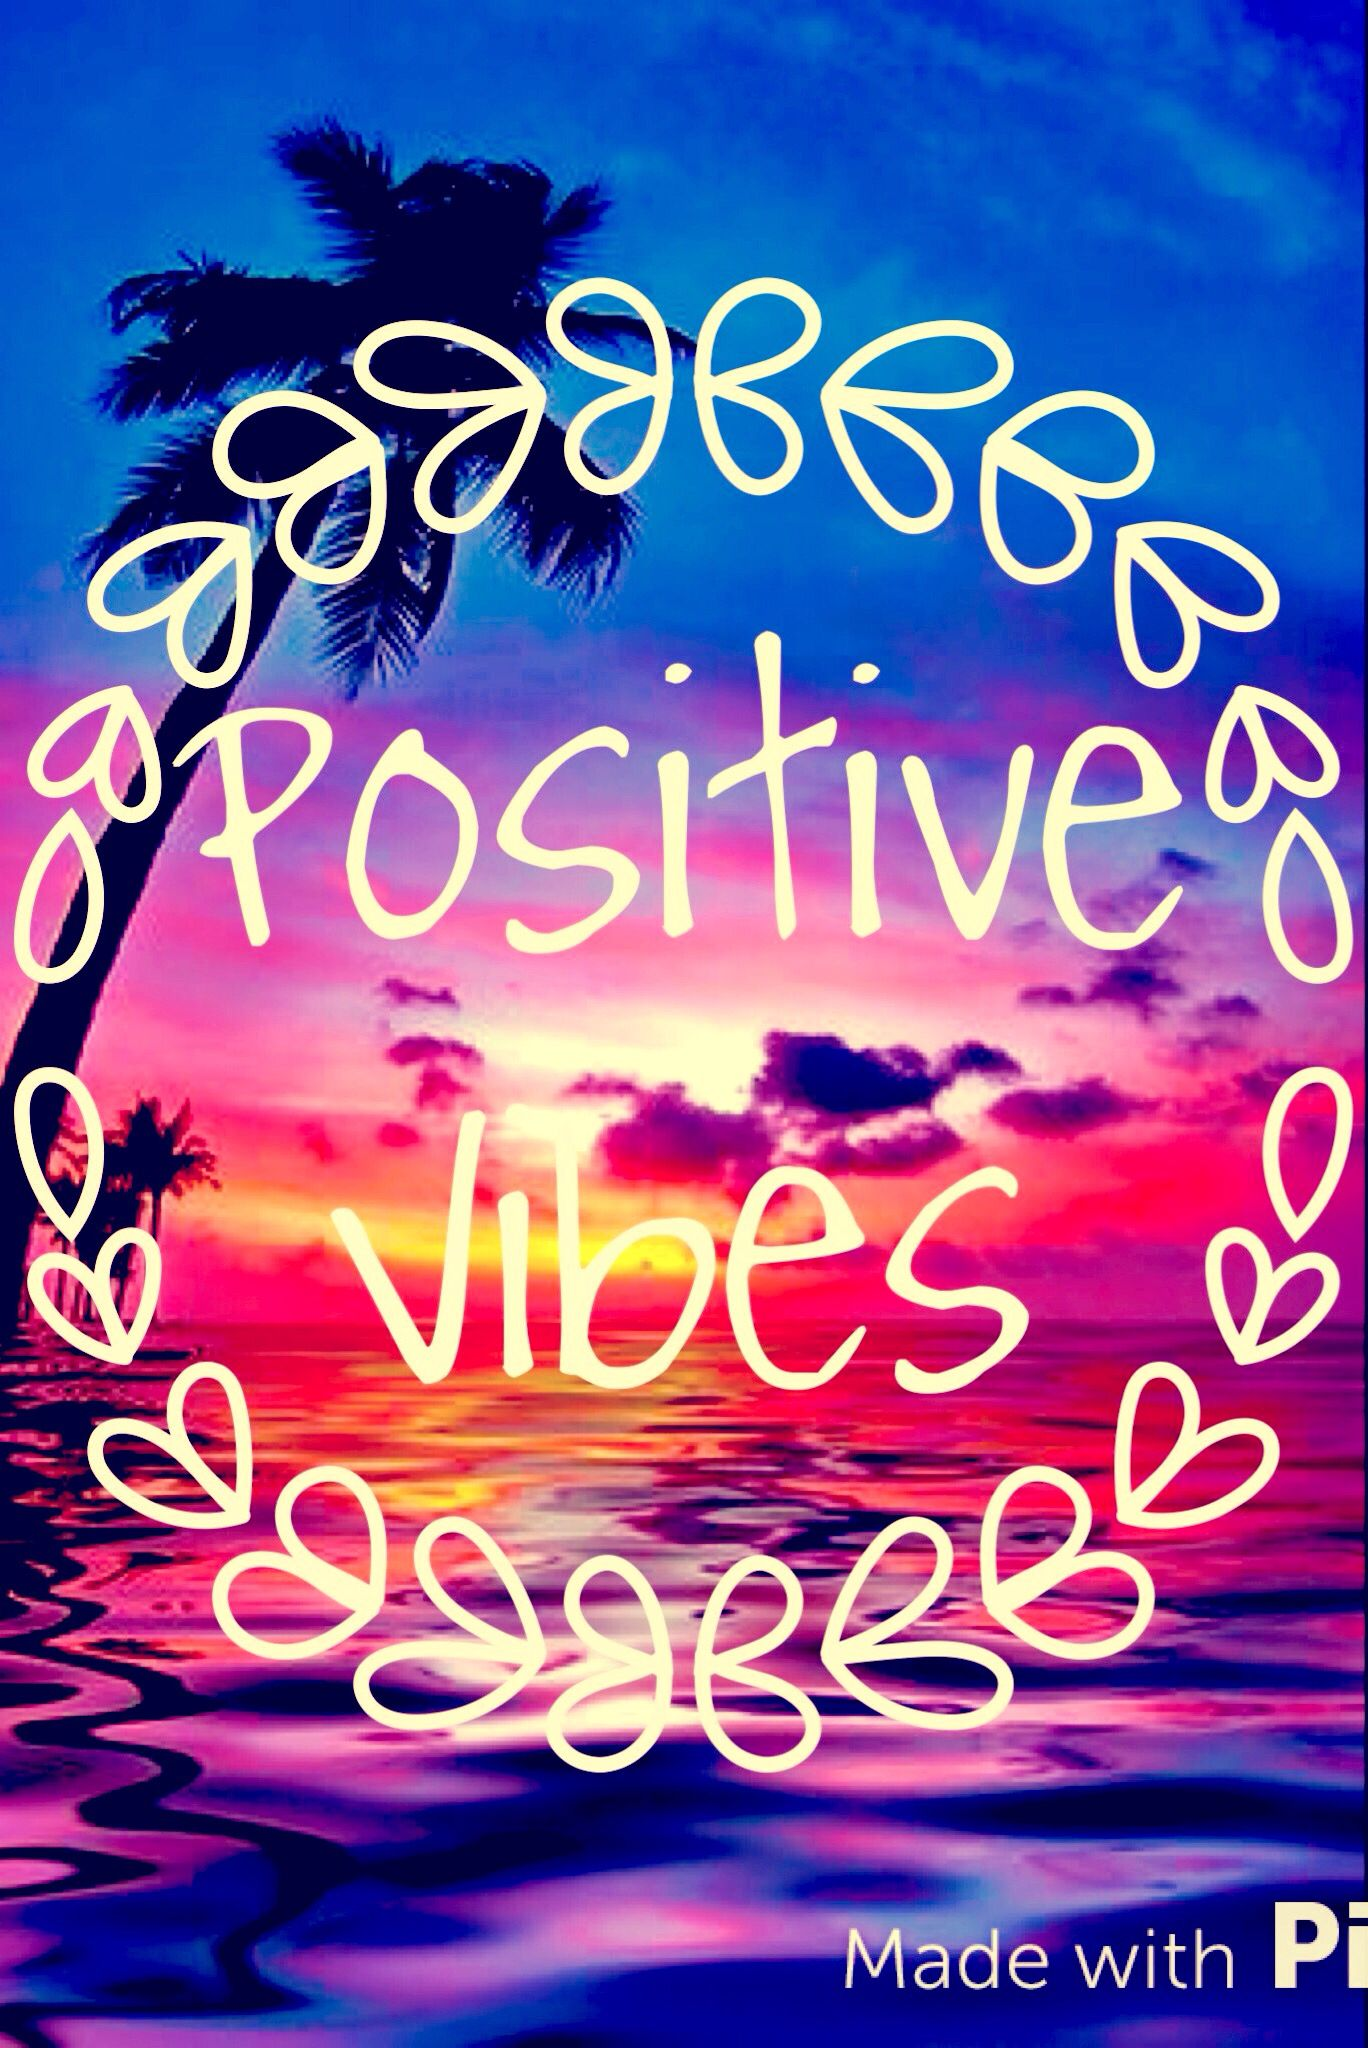 Positive vibes....